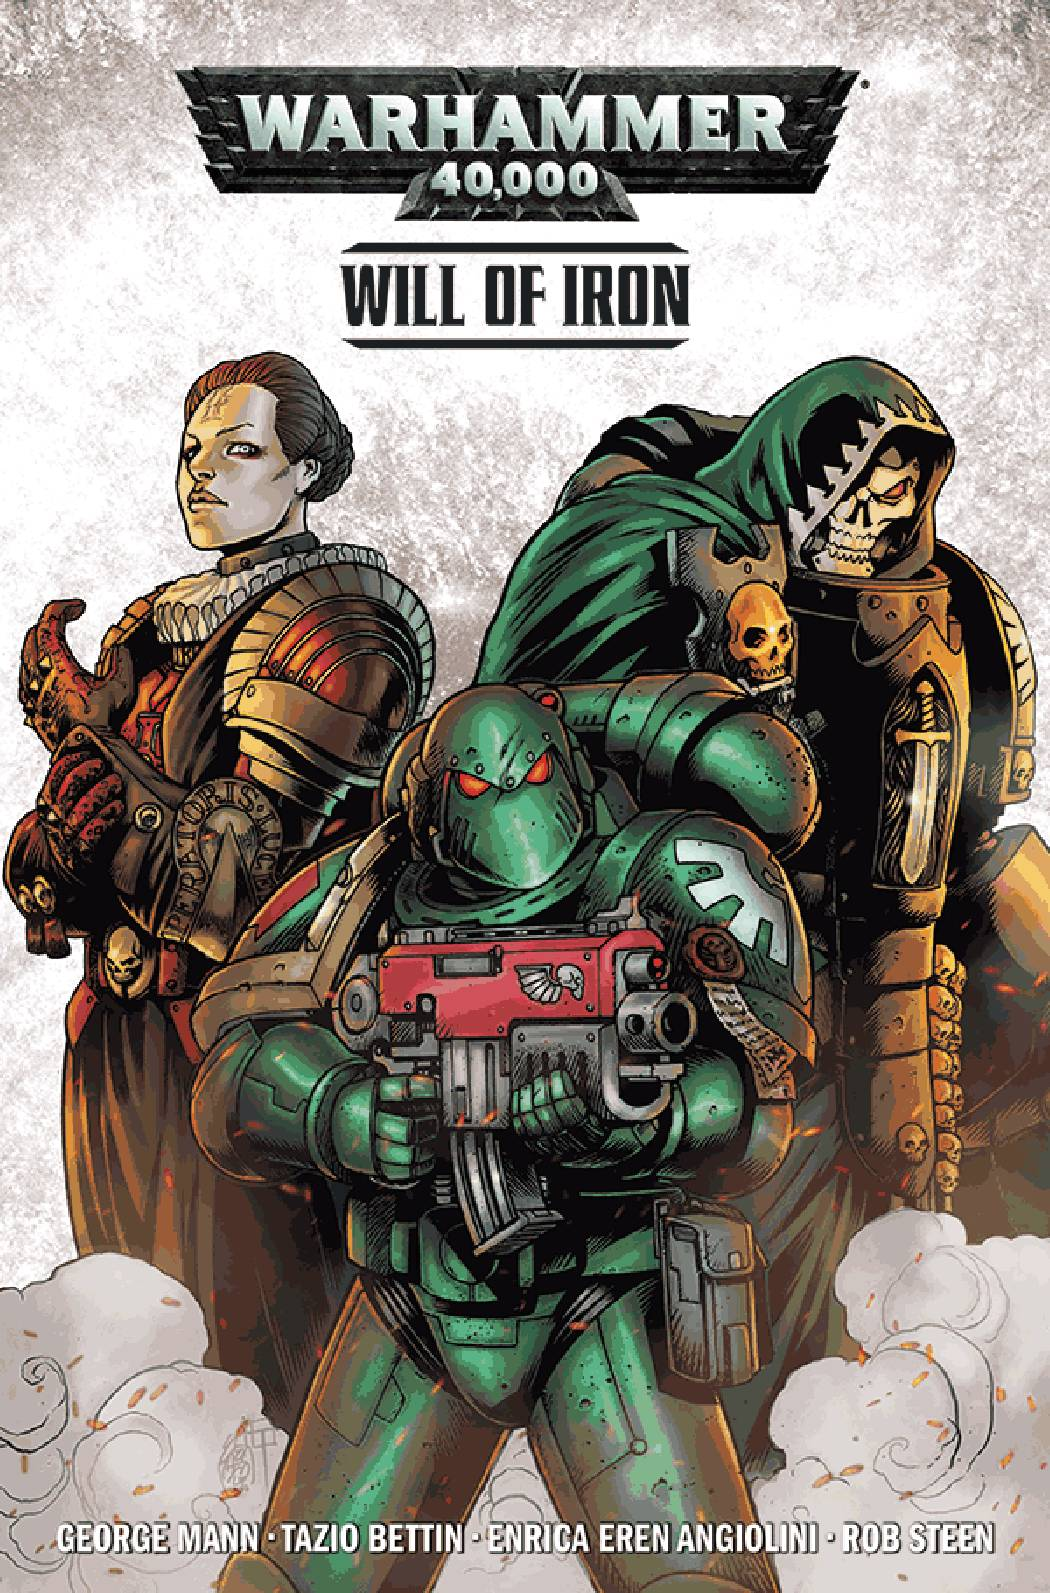 Warhammer 40,000 Will of Iron Trade Paperback